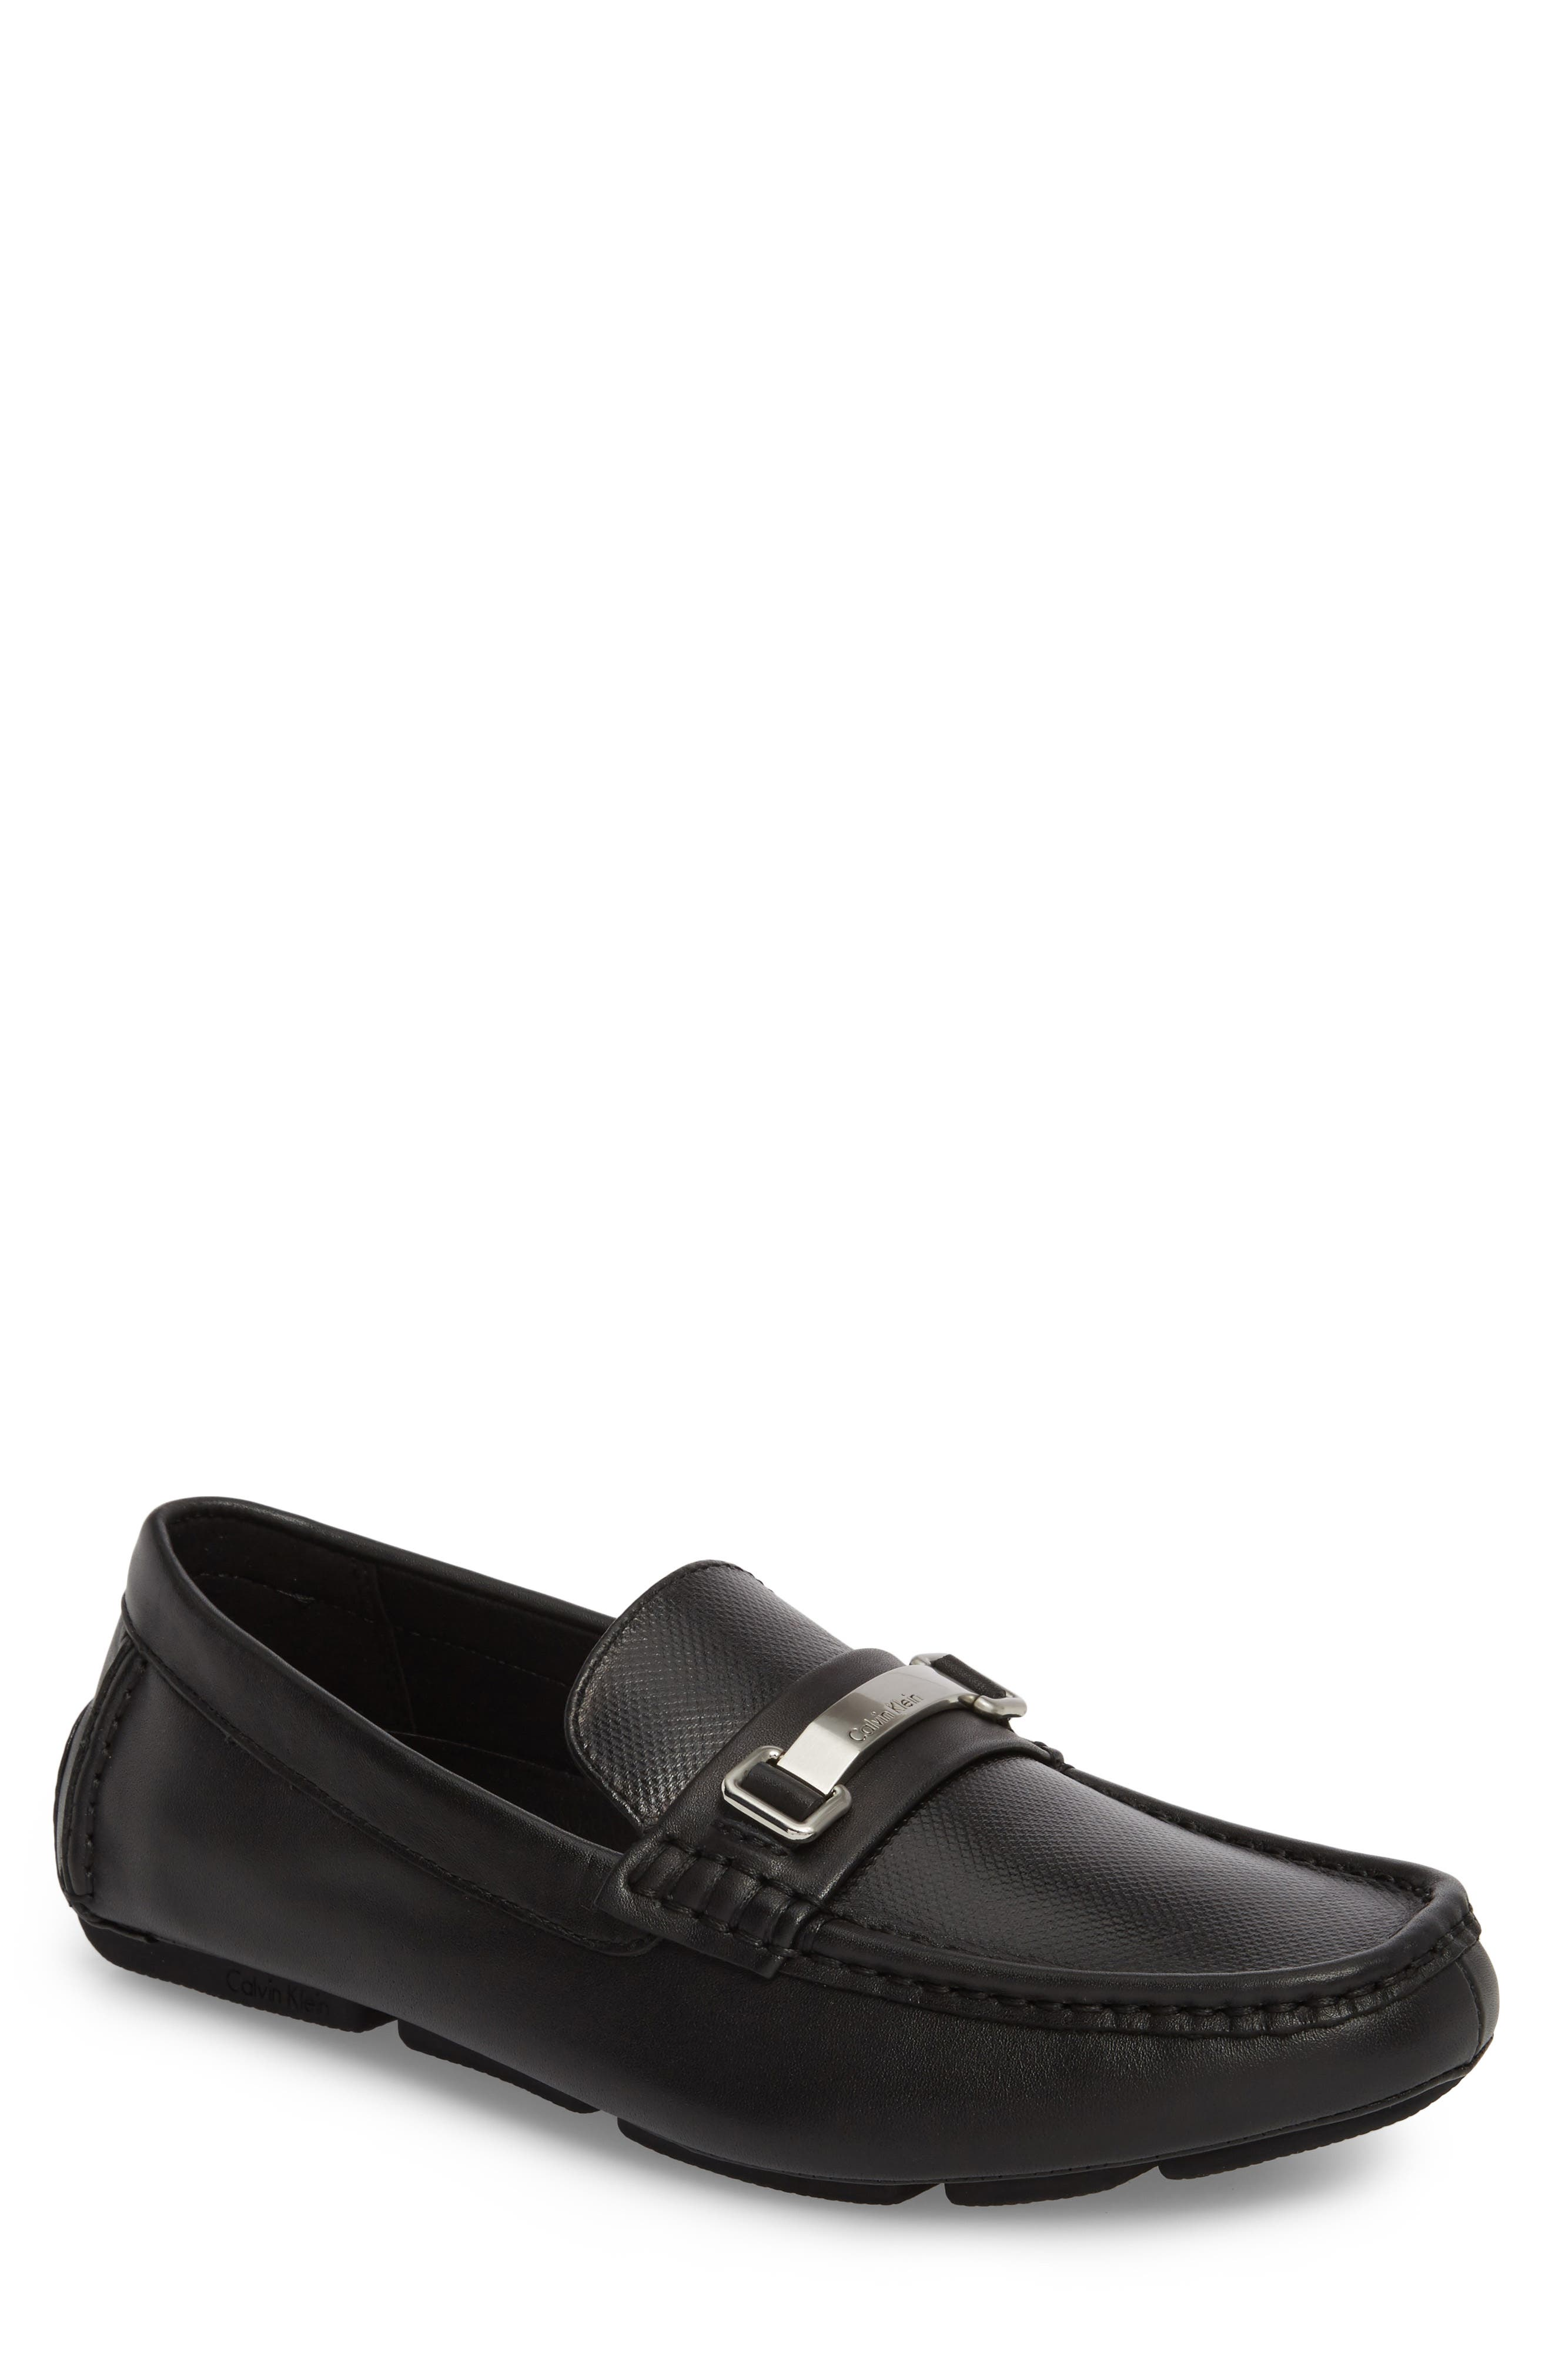 CALVIN KLEIN, Maddix Textured Driving Moccasin, Main thumbnail 1, color, BLACK LEATHER